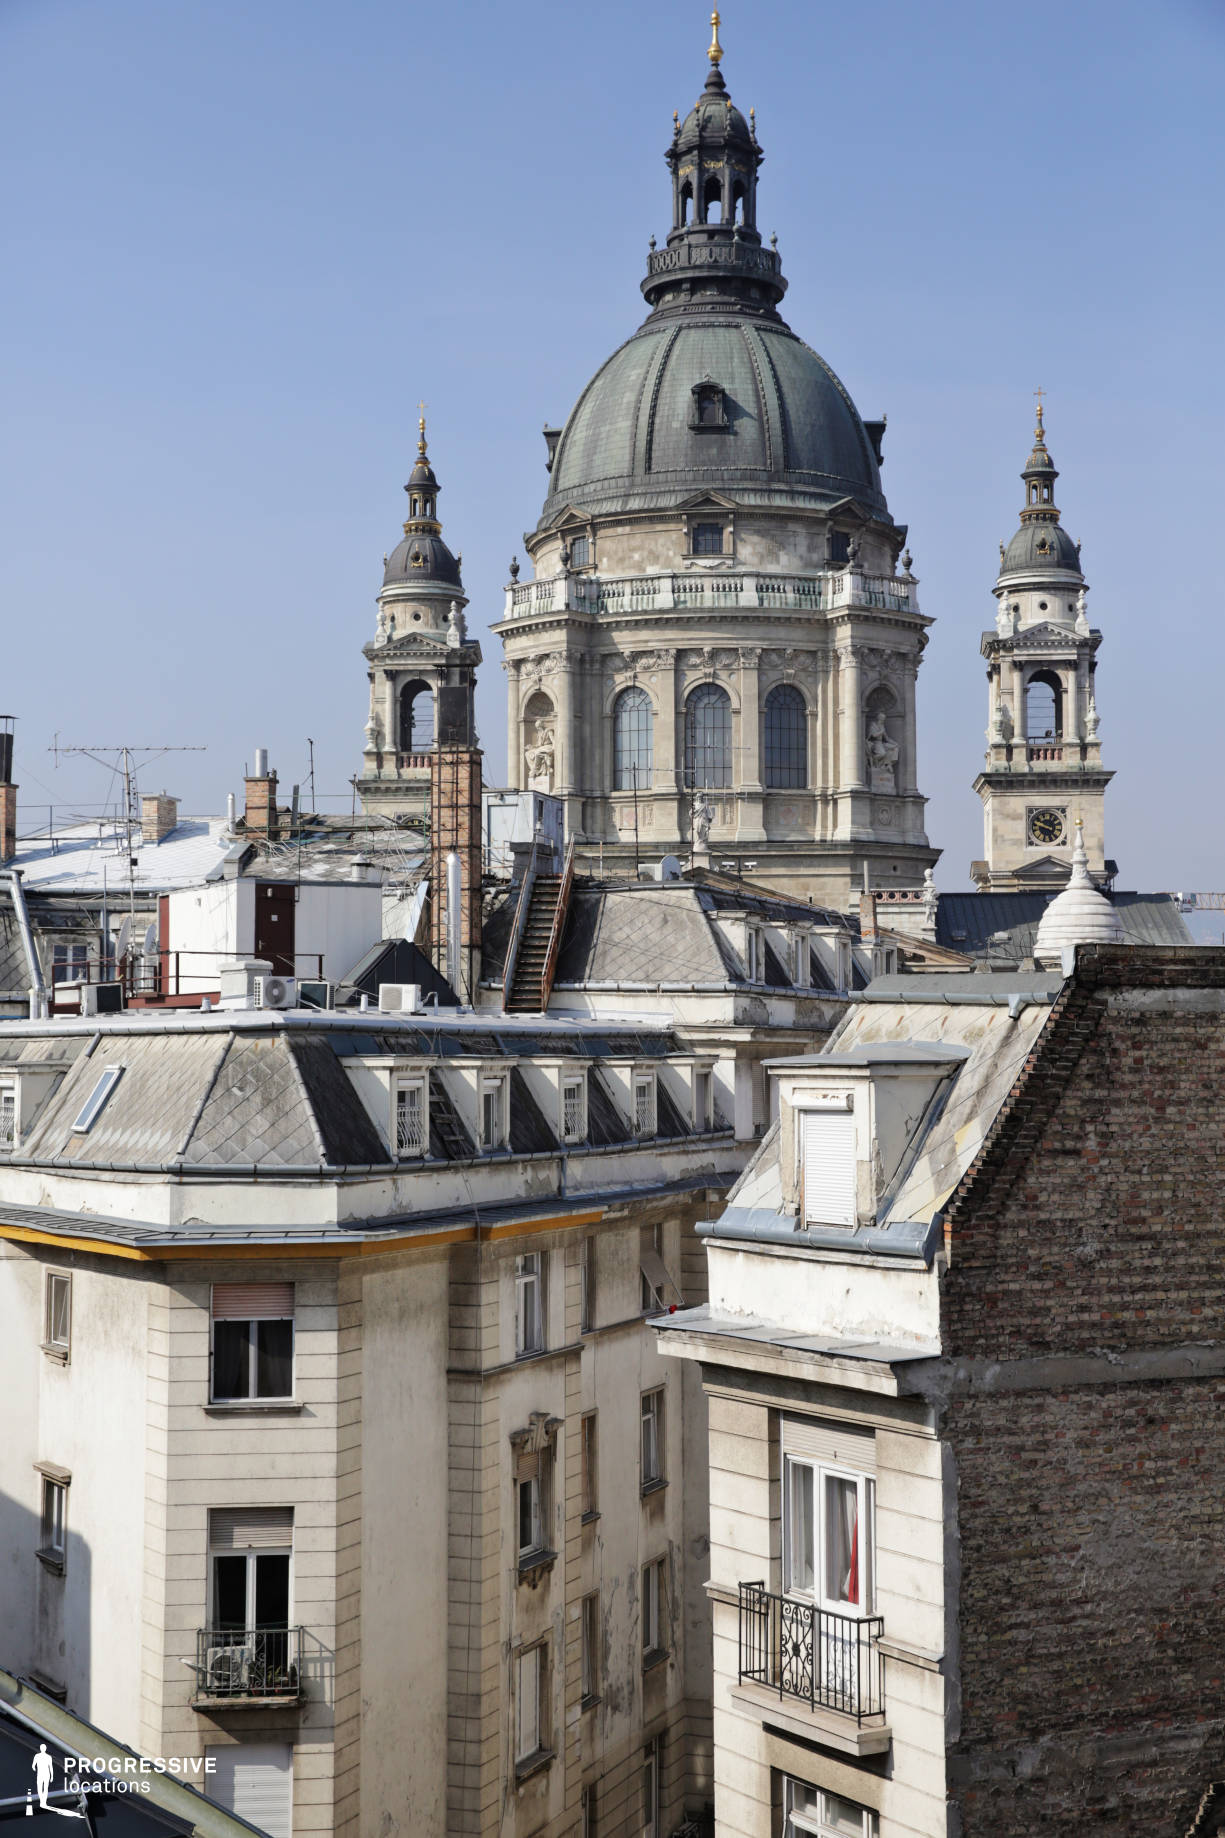 Locations in Budapest: Rooftops with Basilica Dome